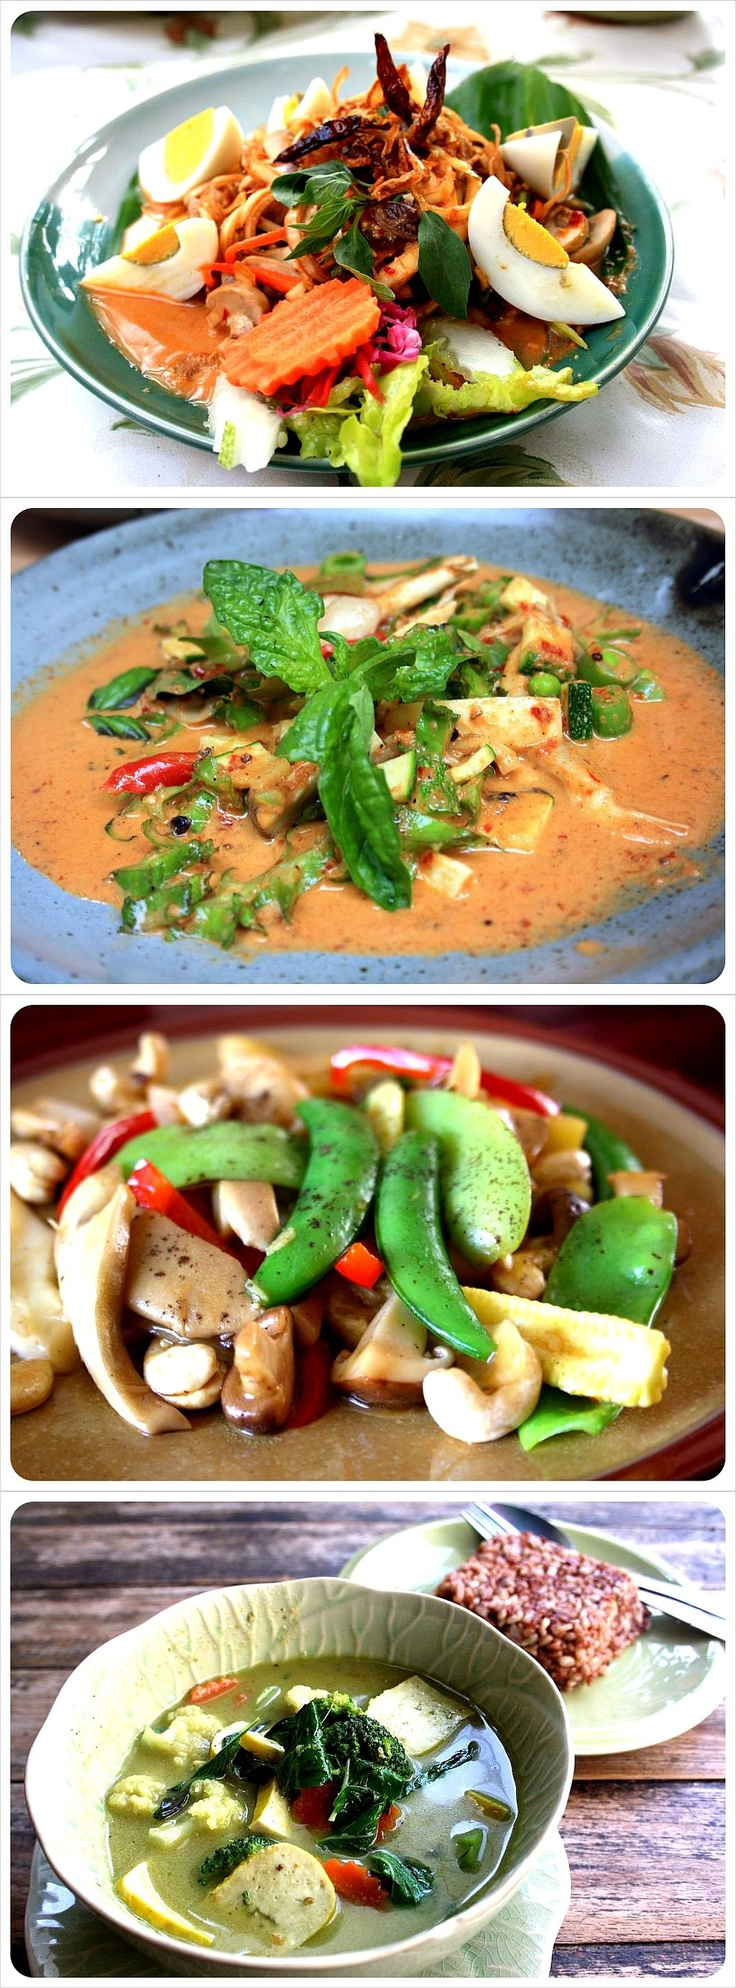 Favorite foods from Thailand